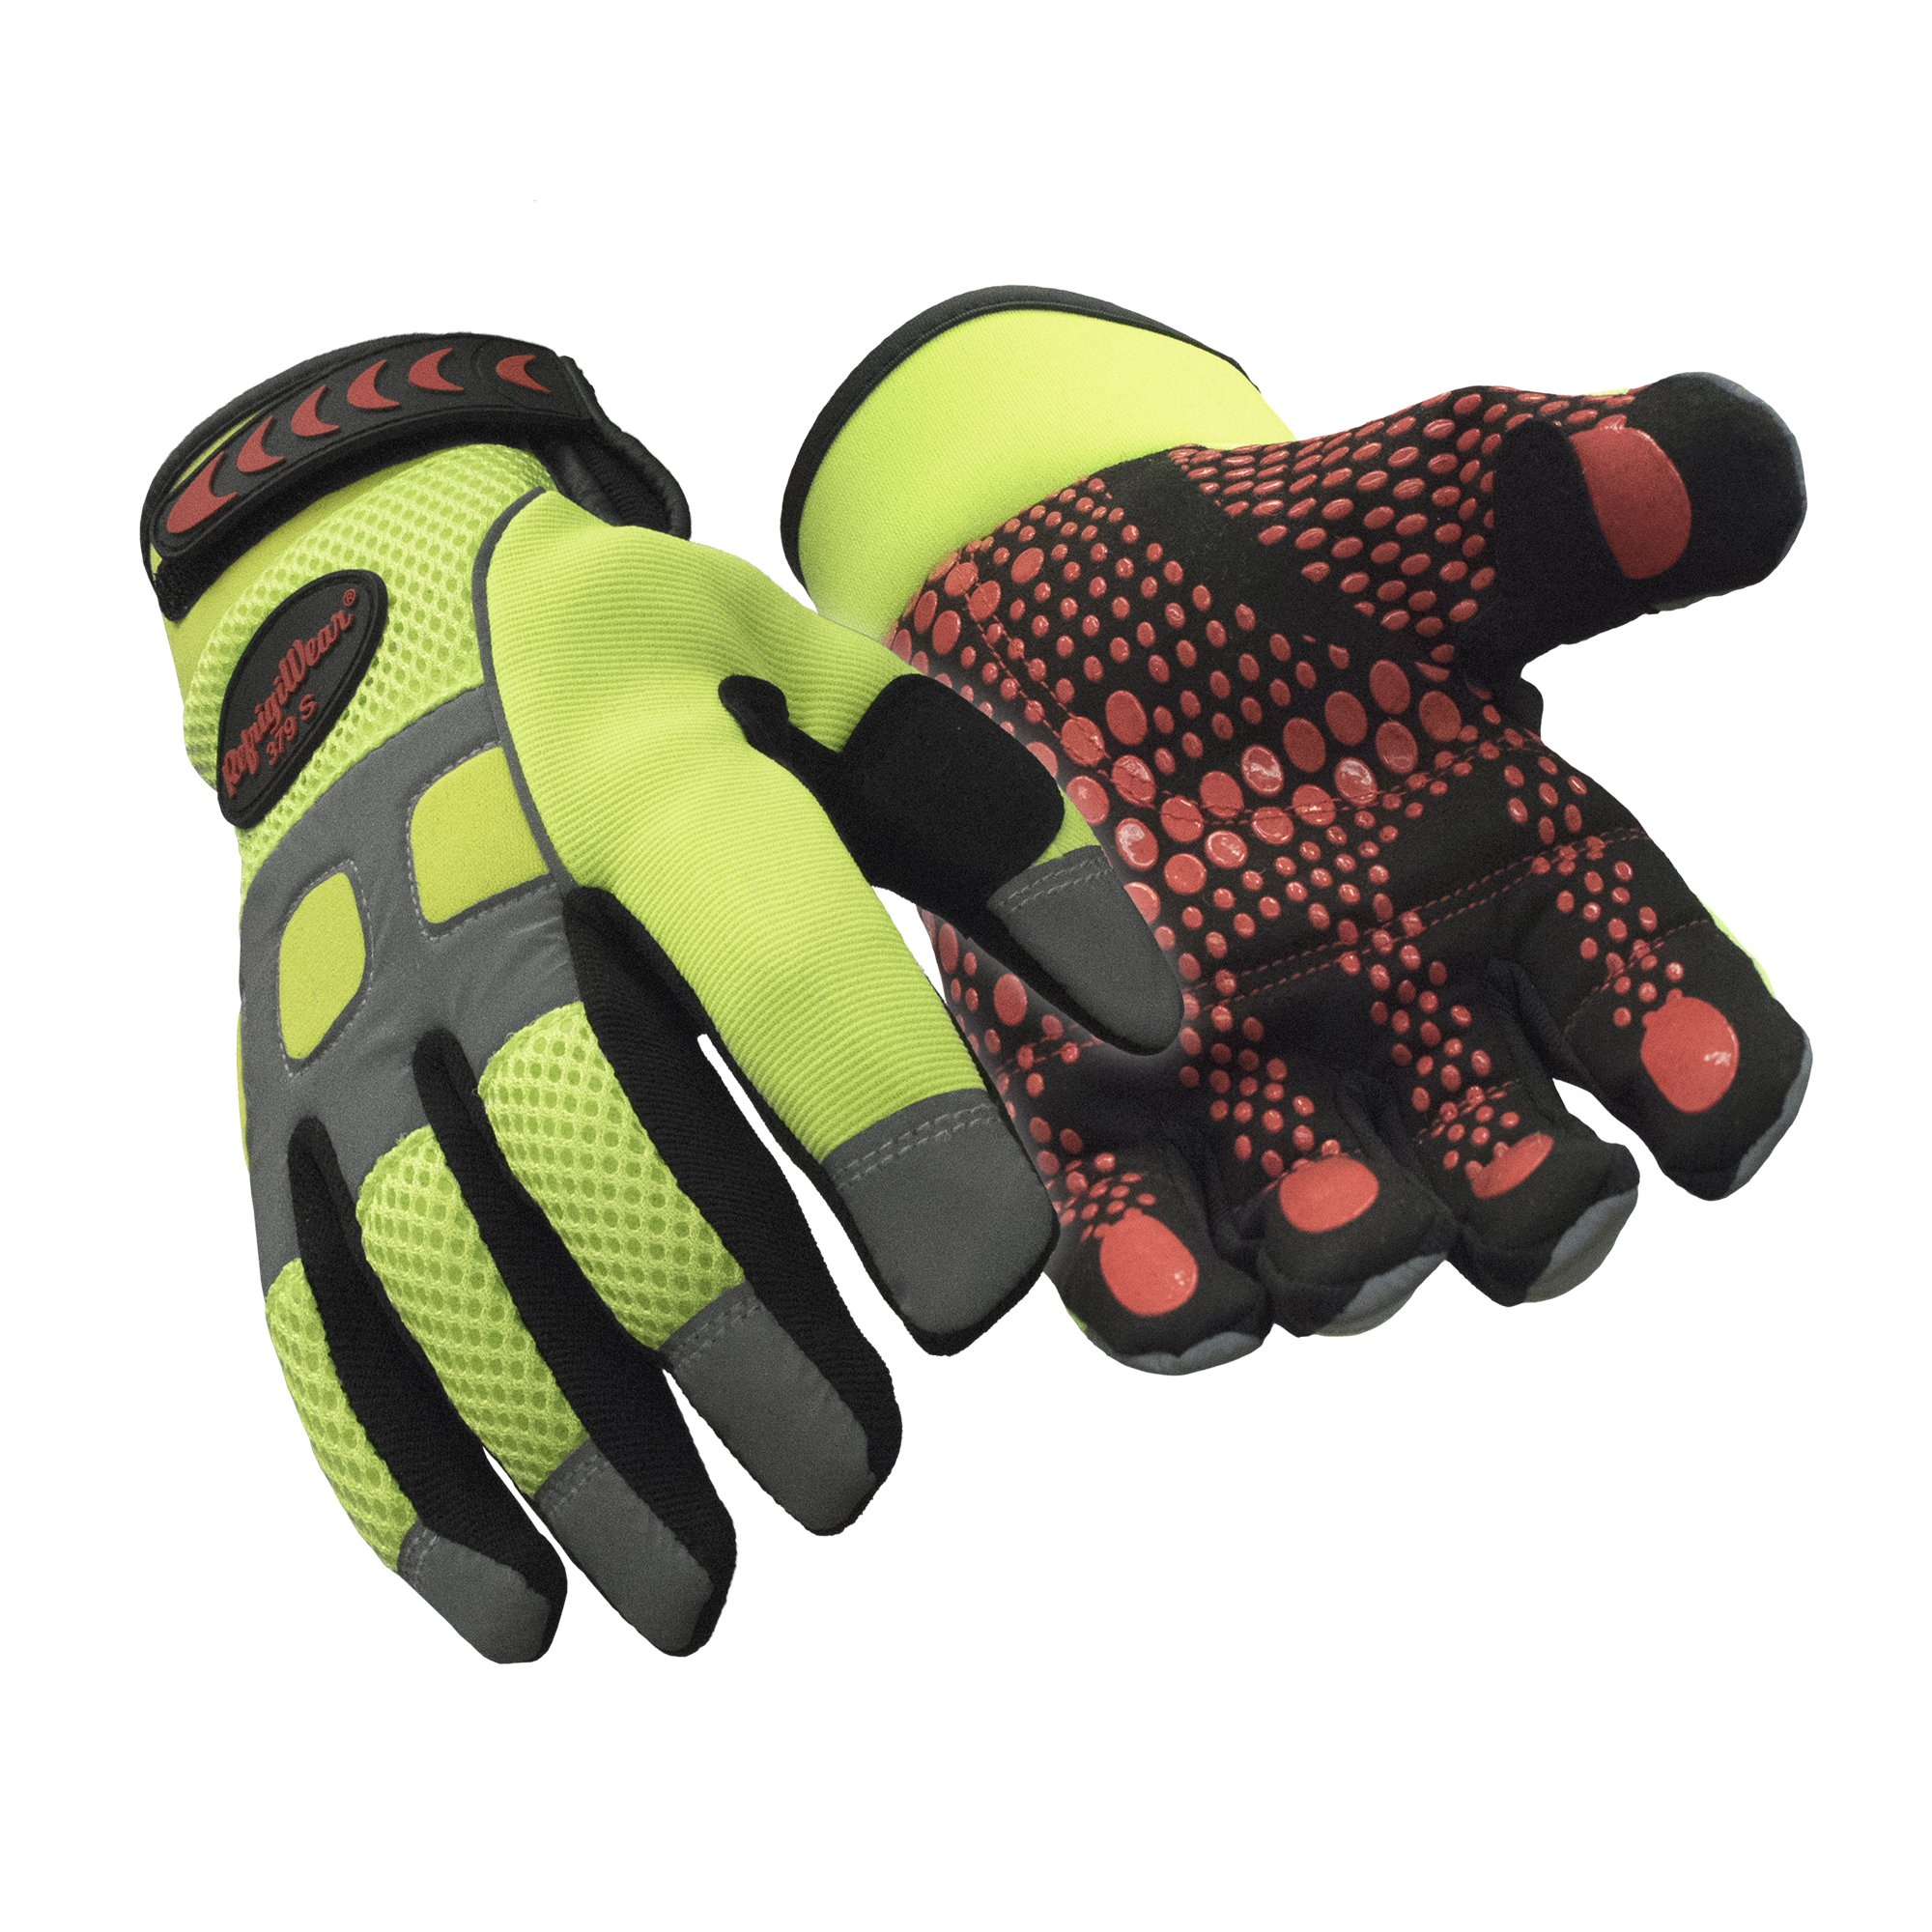 RefrigiWear Men's Insulated Fleece Lined HiVis Super Grip Performance Gloves Reflective with Silicone Grip Dots (High Visibility Lime, X-Large)